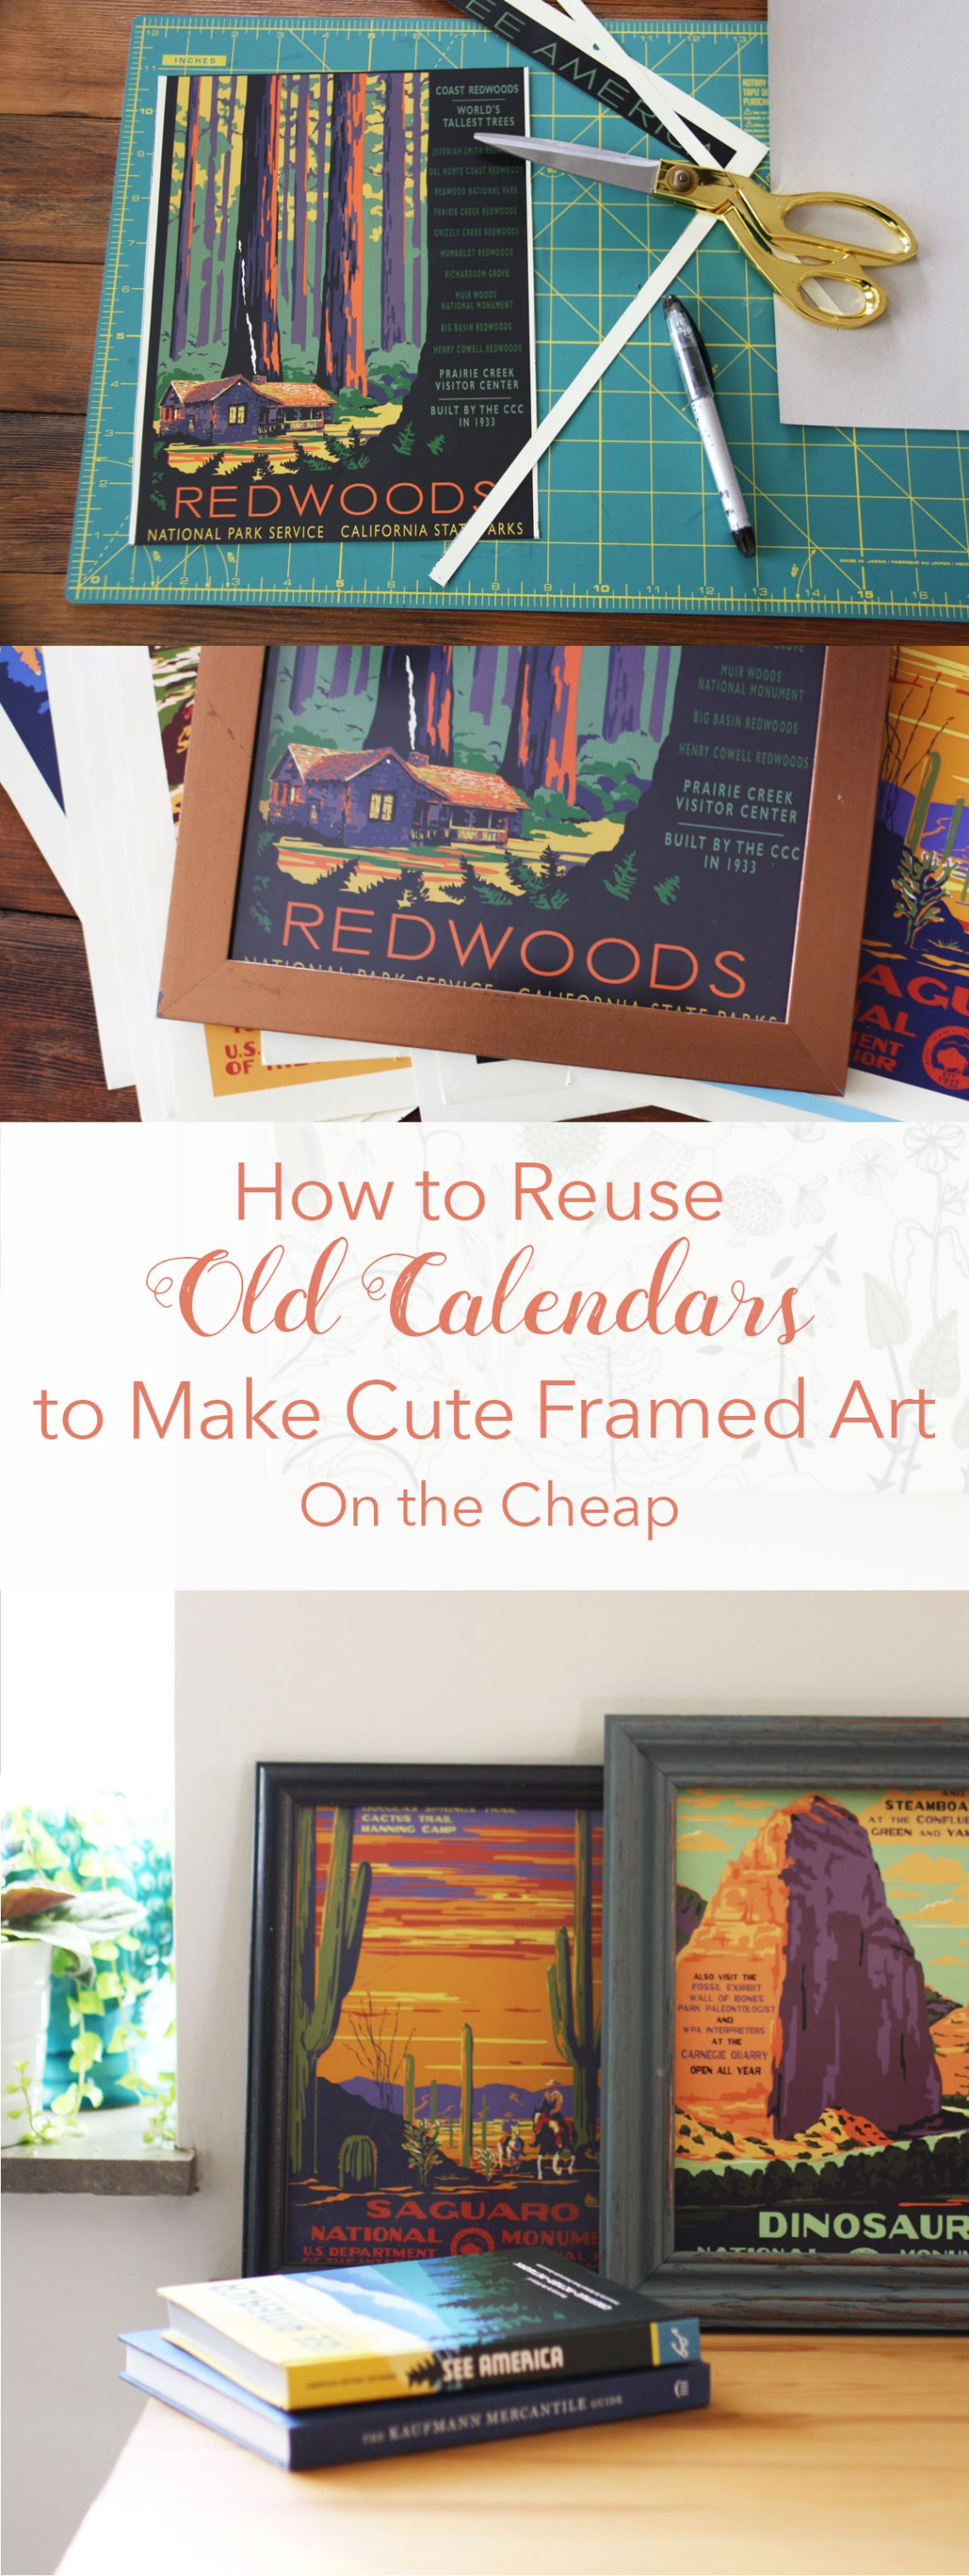 How to Reuse Old Calendars to Make Cute Framed Art on the Cheap | redleafstyle.com